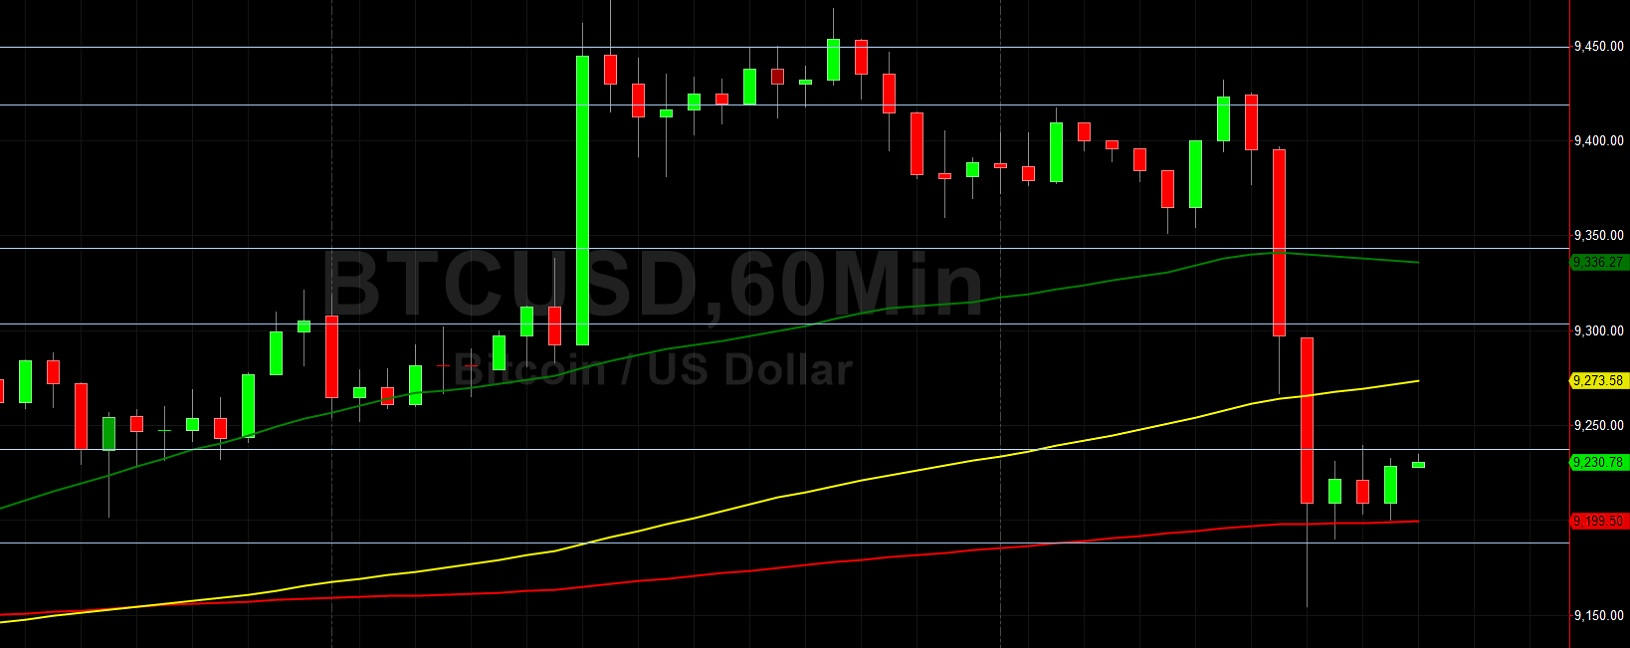 BTC/USD Again Fails to Test 9500:  Sally Ho's Technical Analysis 10 July 2020 BTC